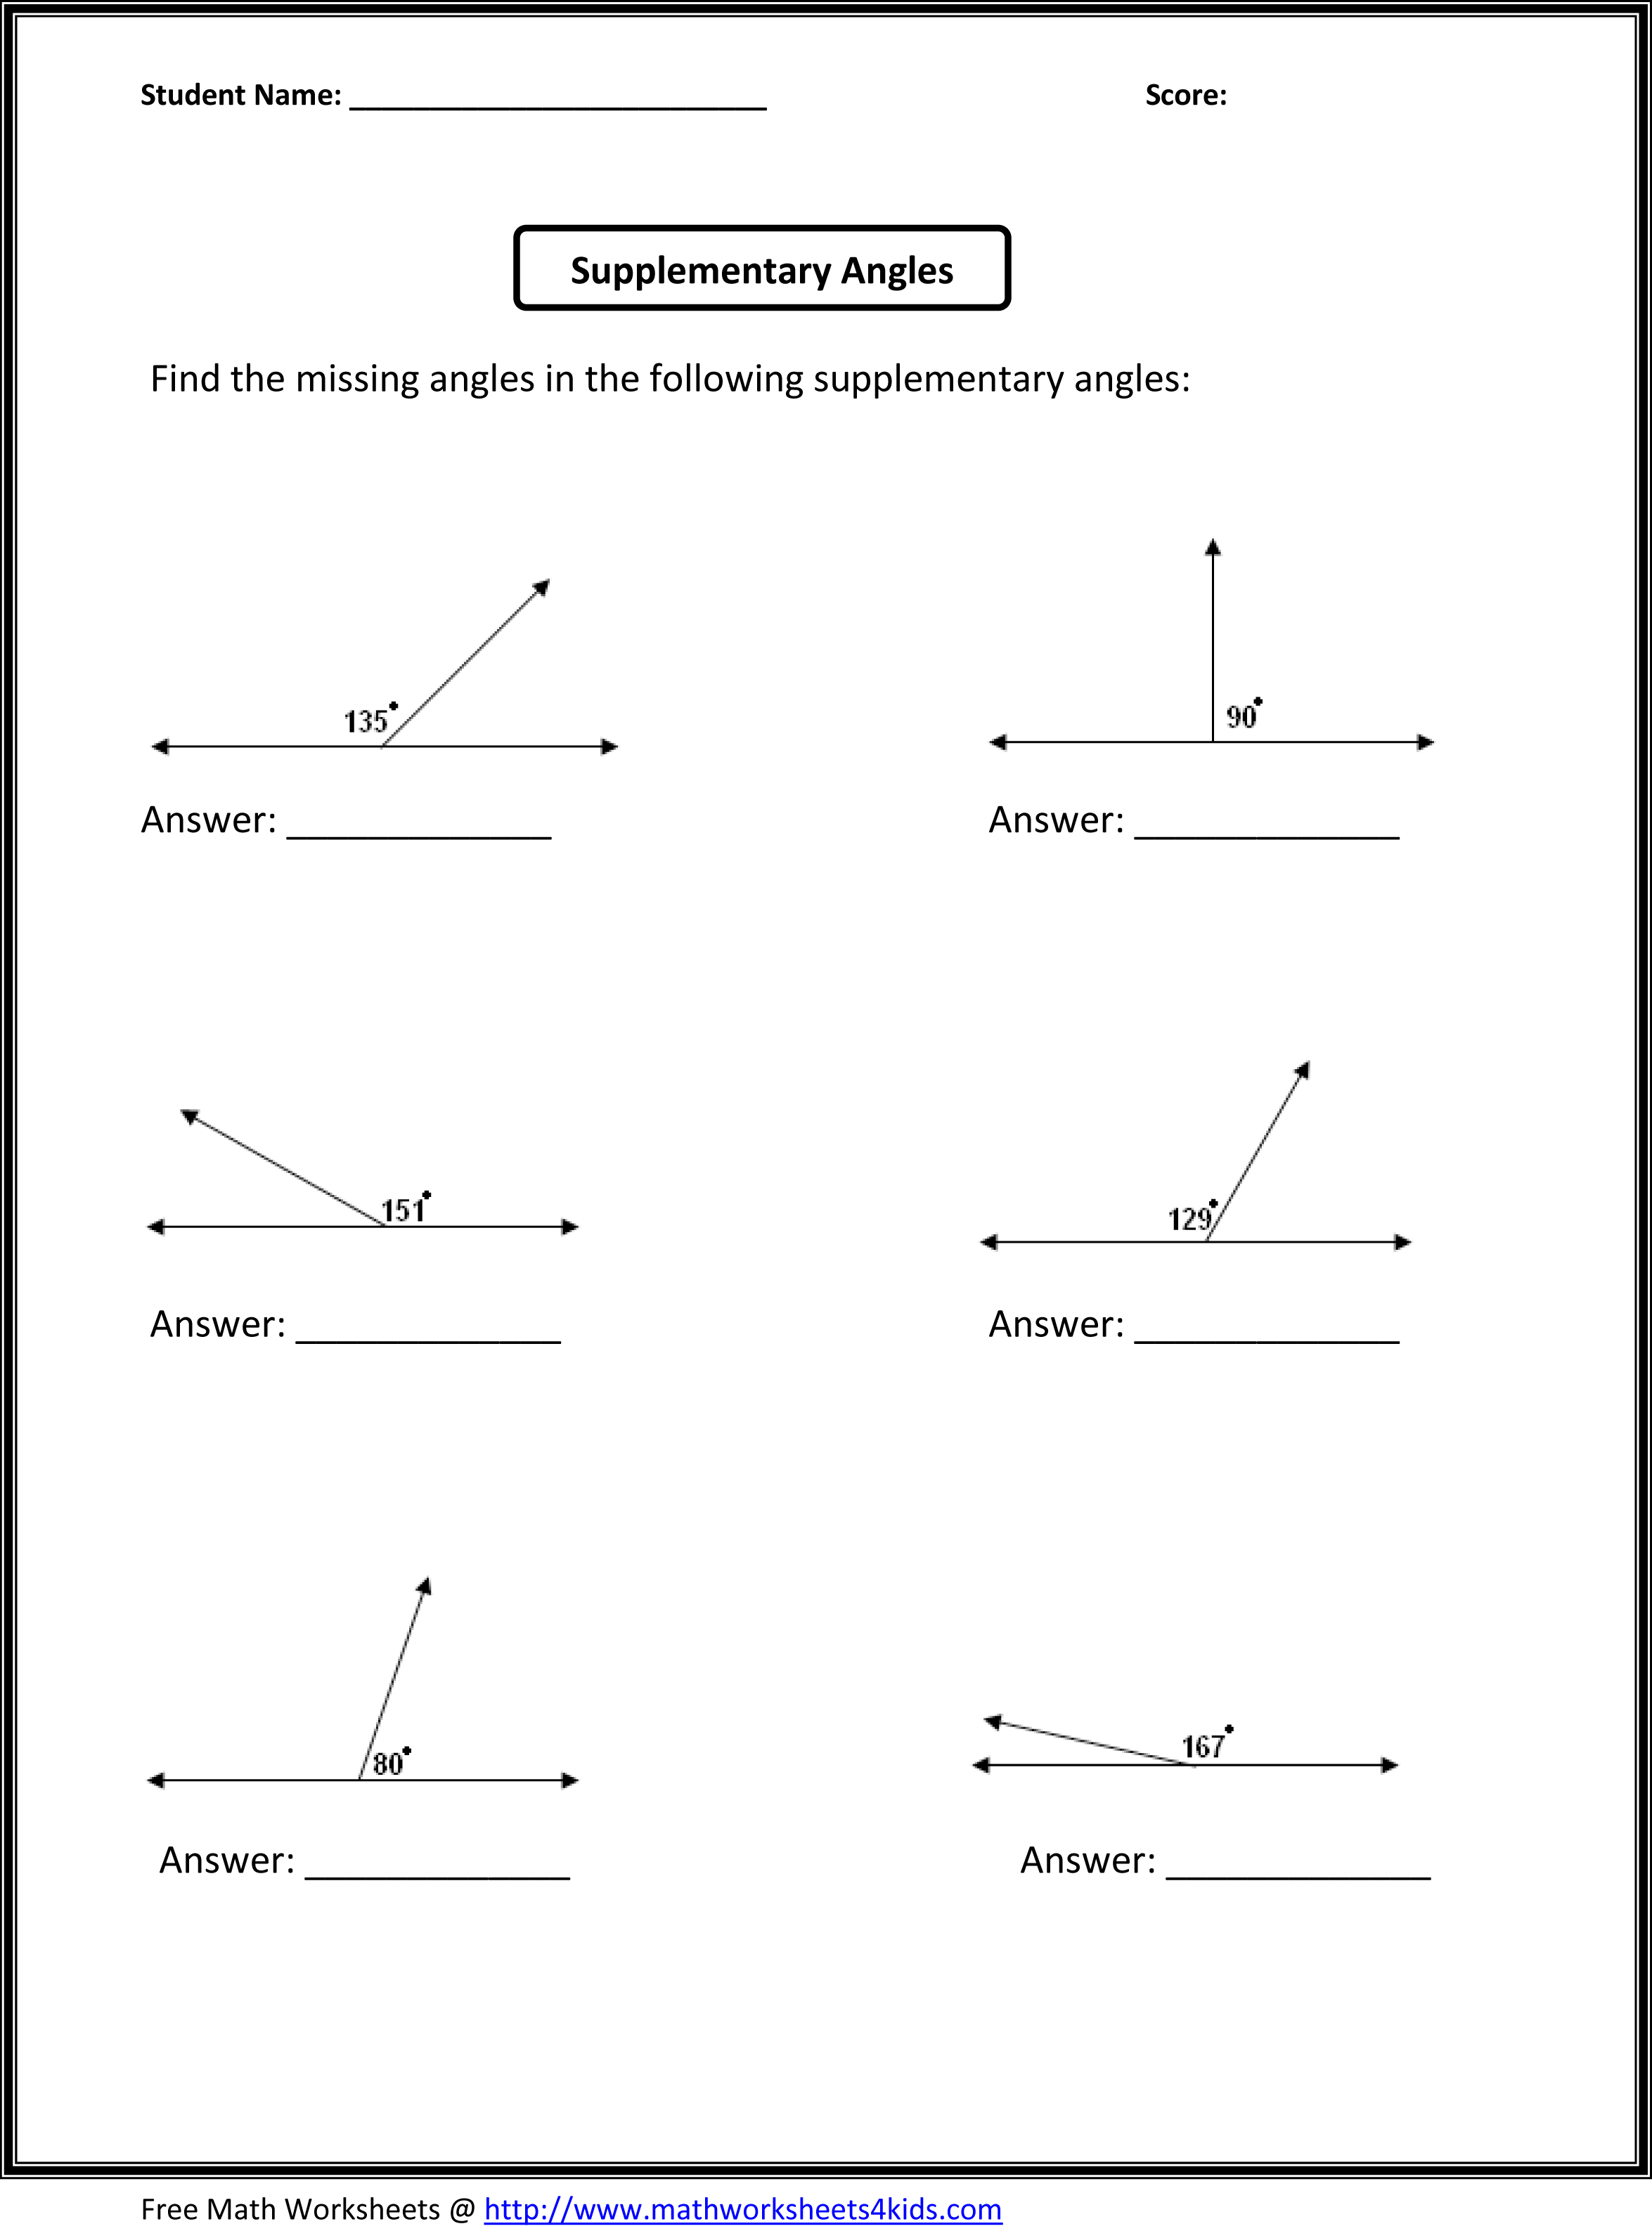 Algebra 1 Worksheets With Answer Key – Algebra 1 Math Worksheets